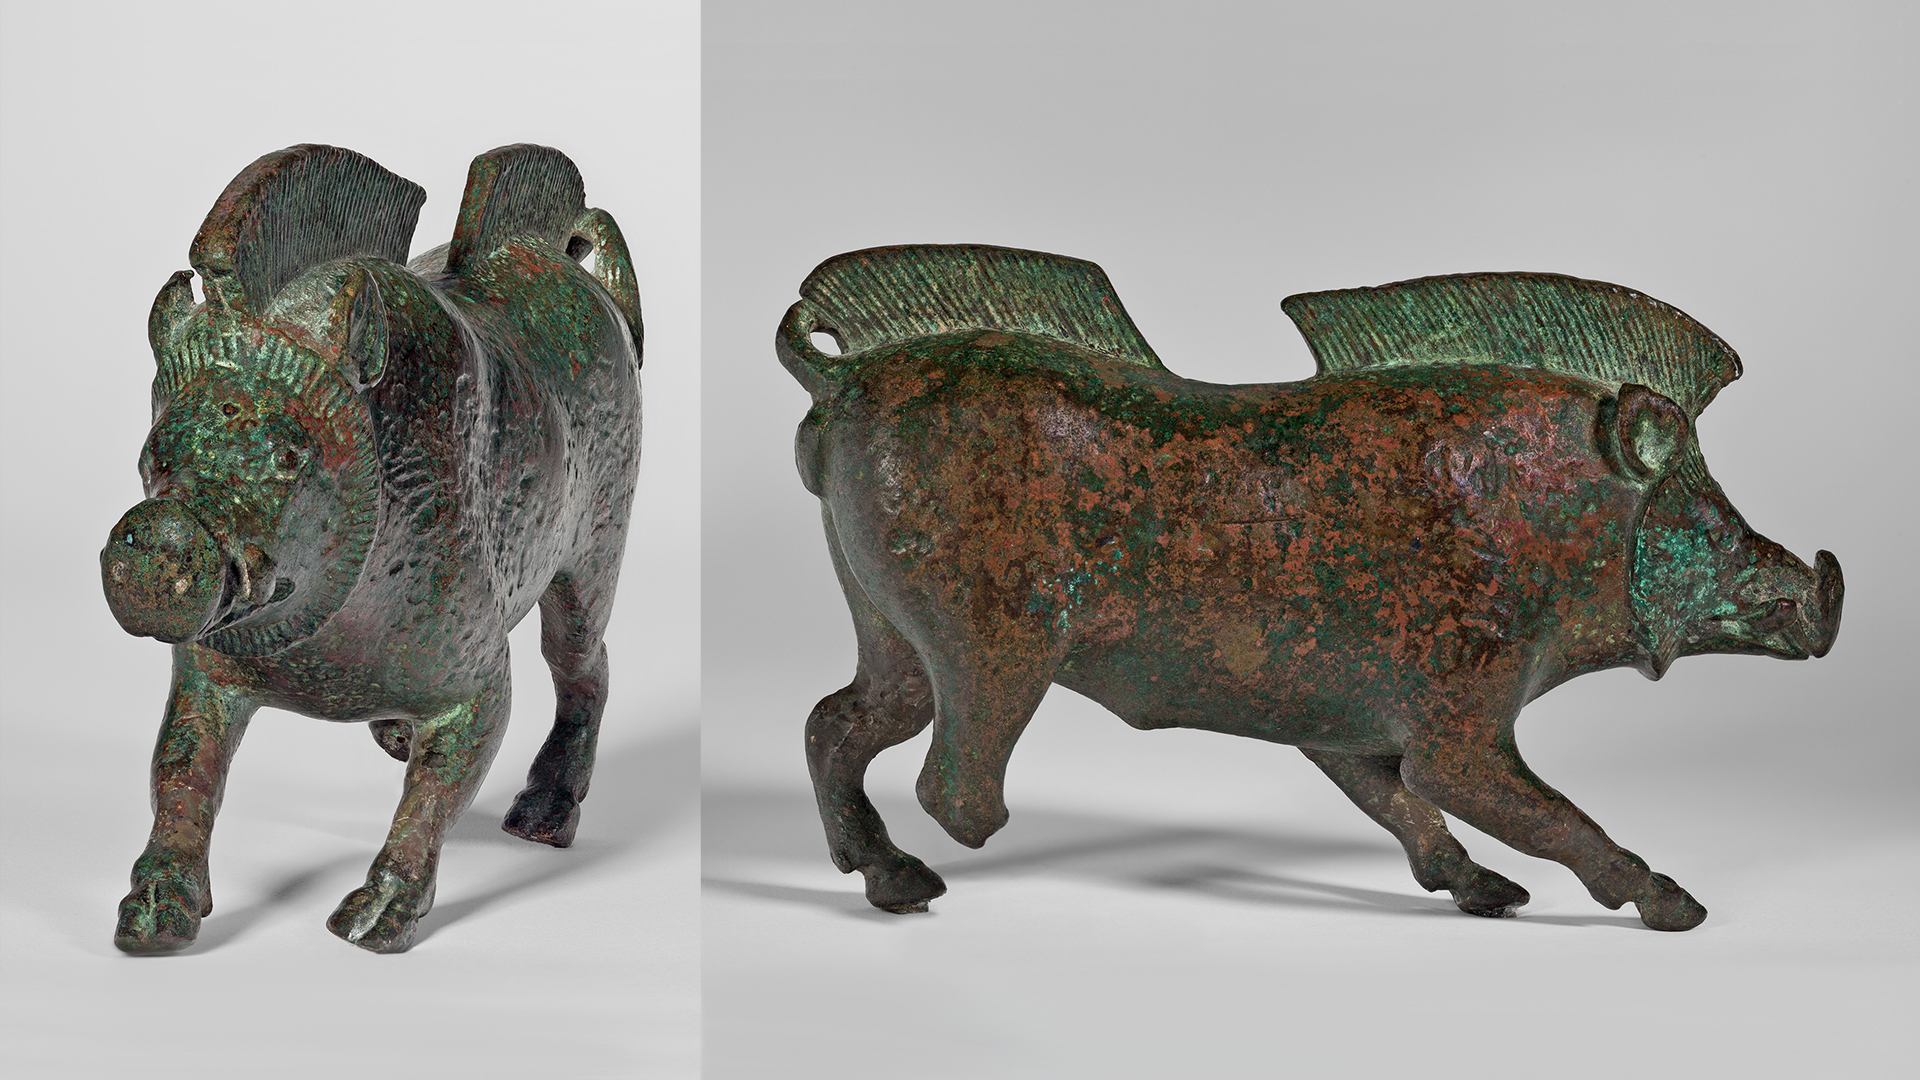 This split-screen image shows two sides of a realistic sculpture of a boar. On the left is a frontal view; on the right is a side view.